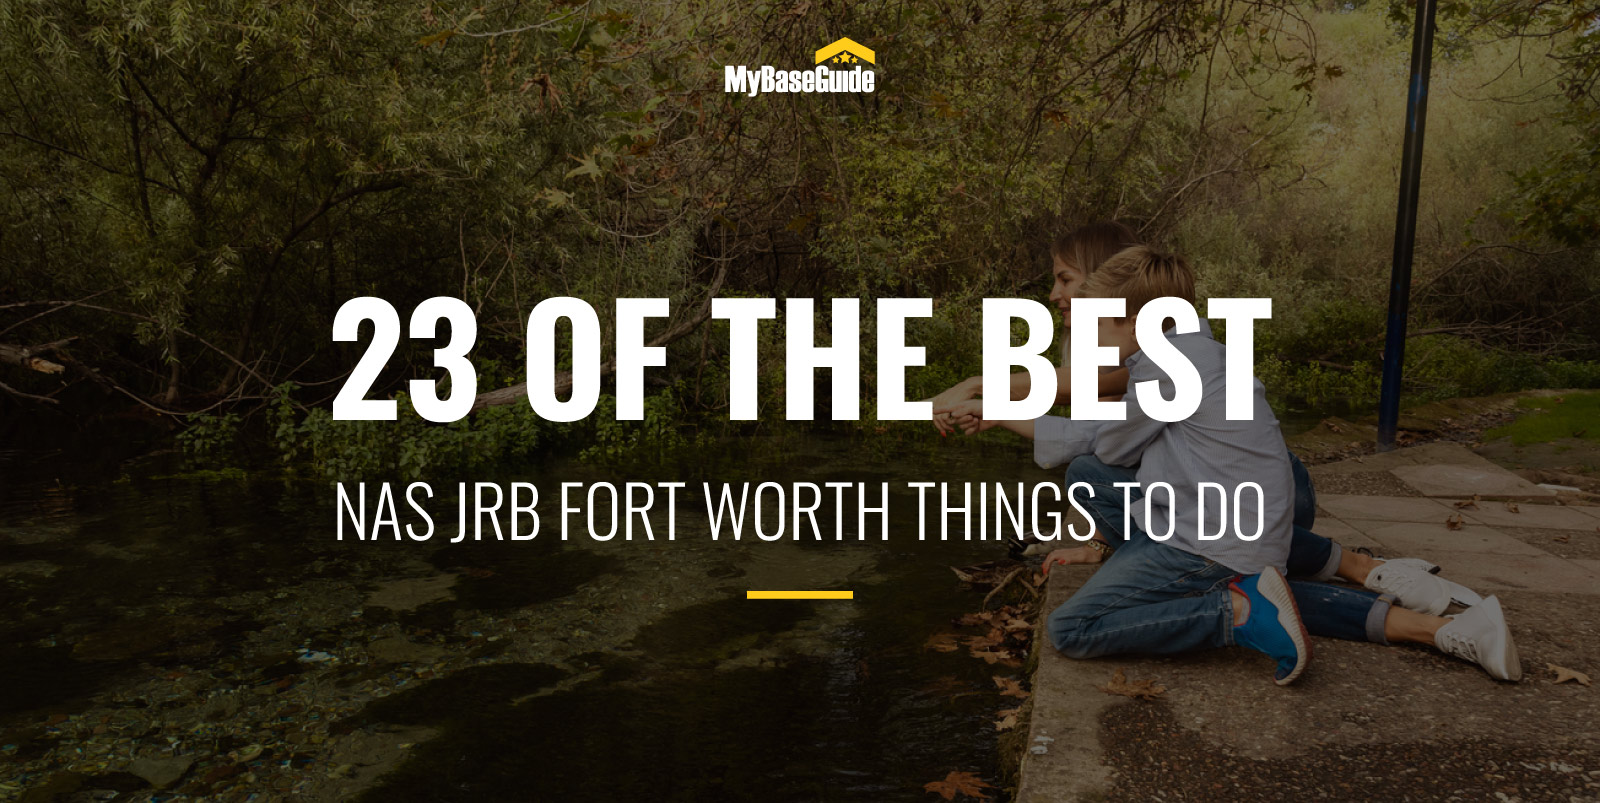 23 of the Best Things To Do in NAS JRB Fort Worth